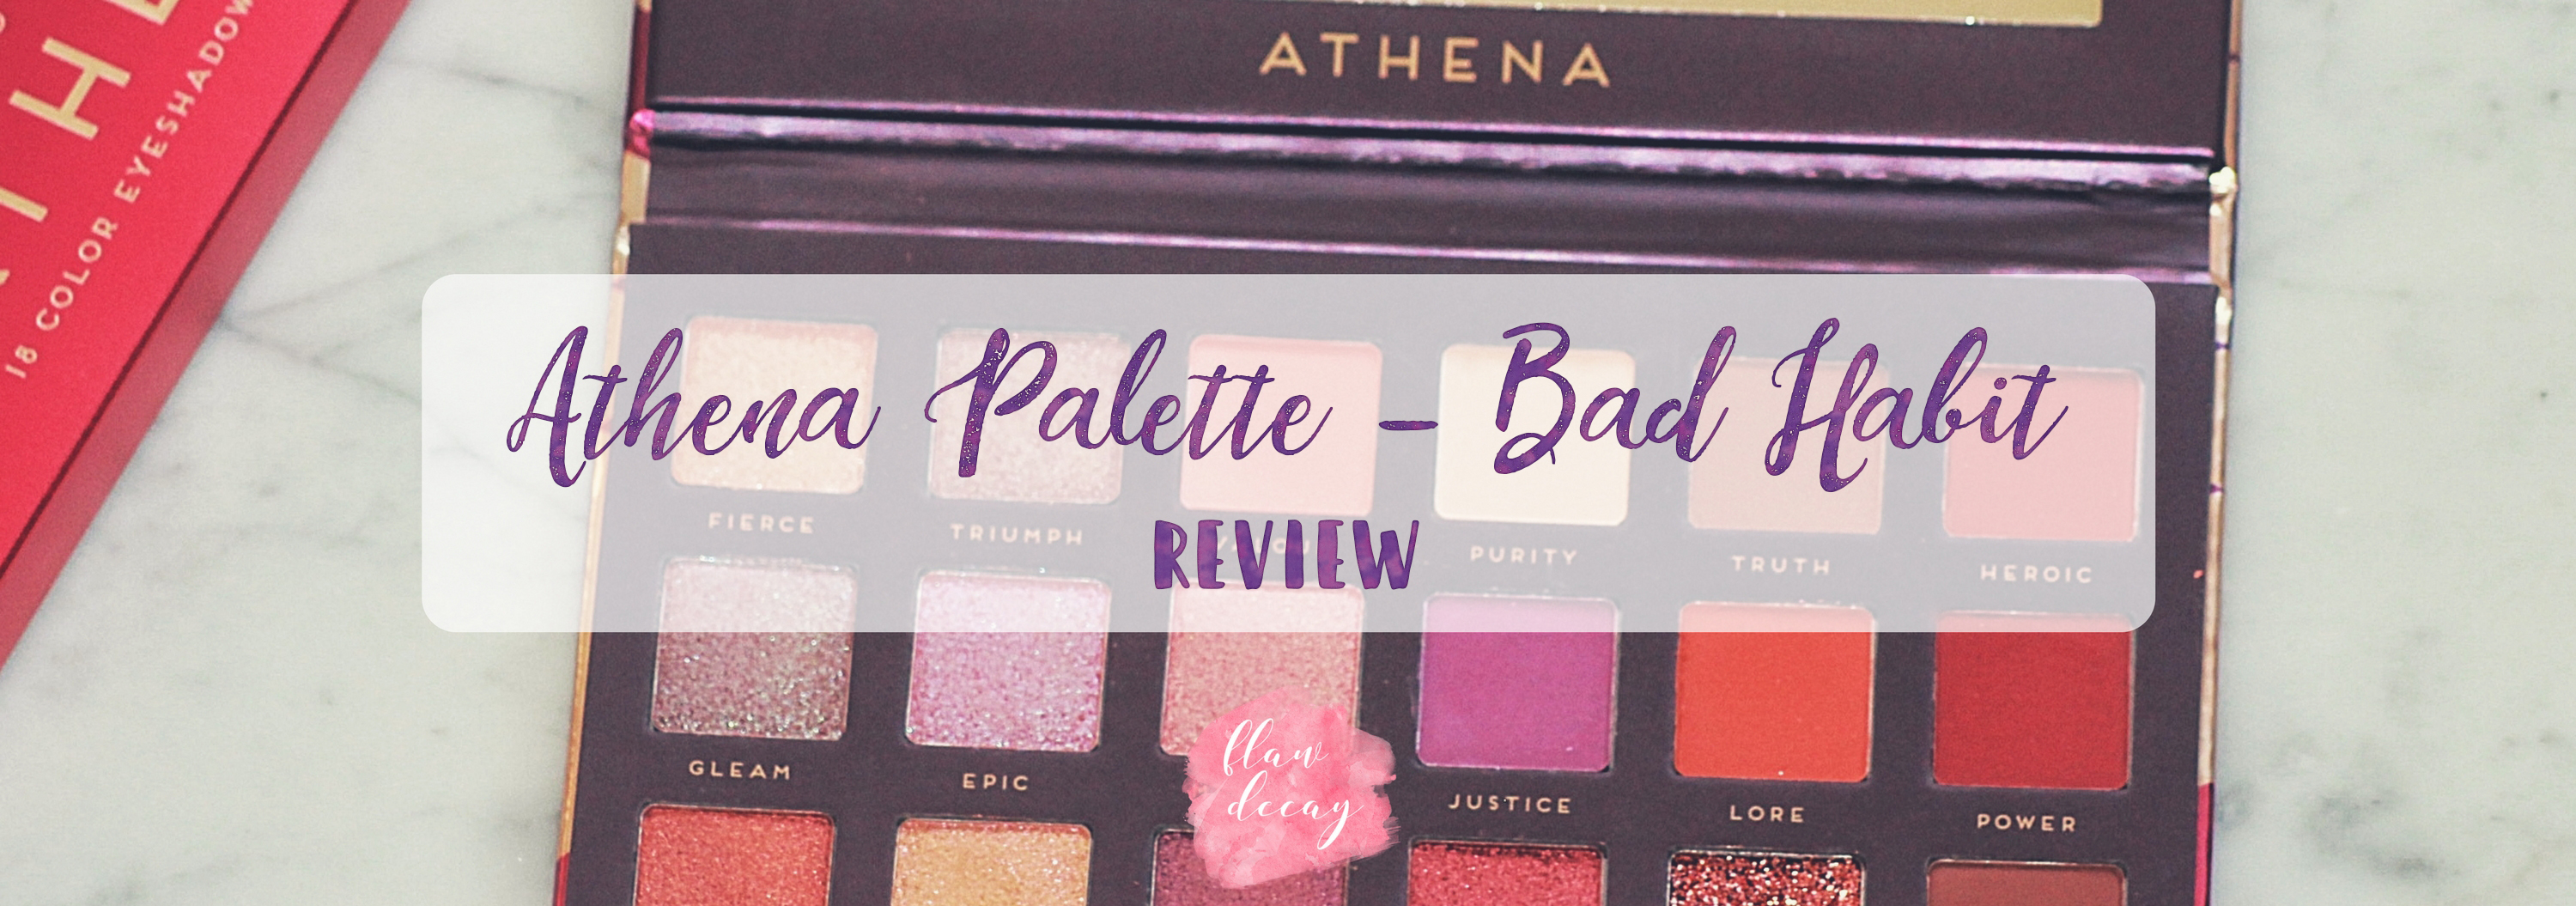 Athena Palette – Bad Habit (Review)